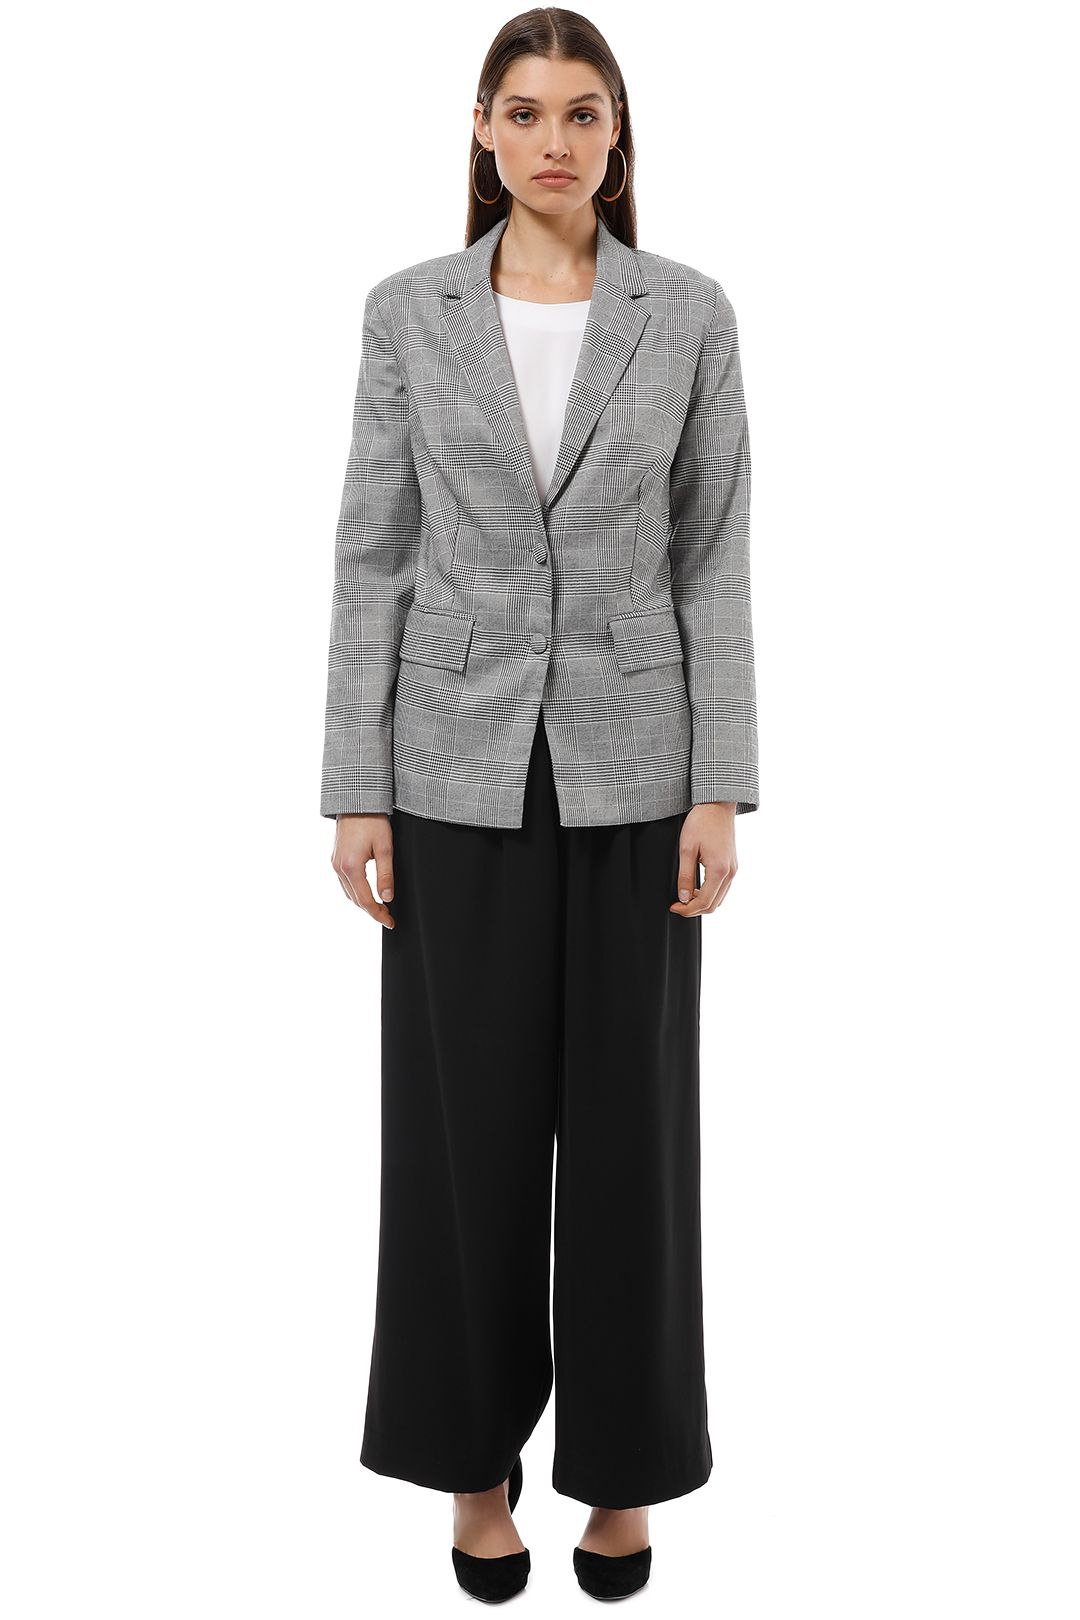 The Jetset Diaries - Portman Blazer - Grey - Front